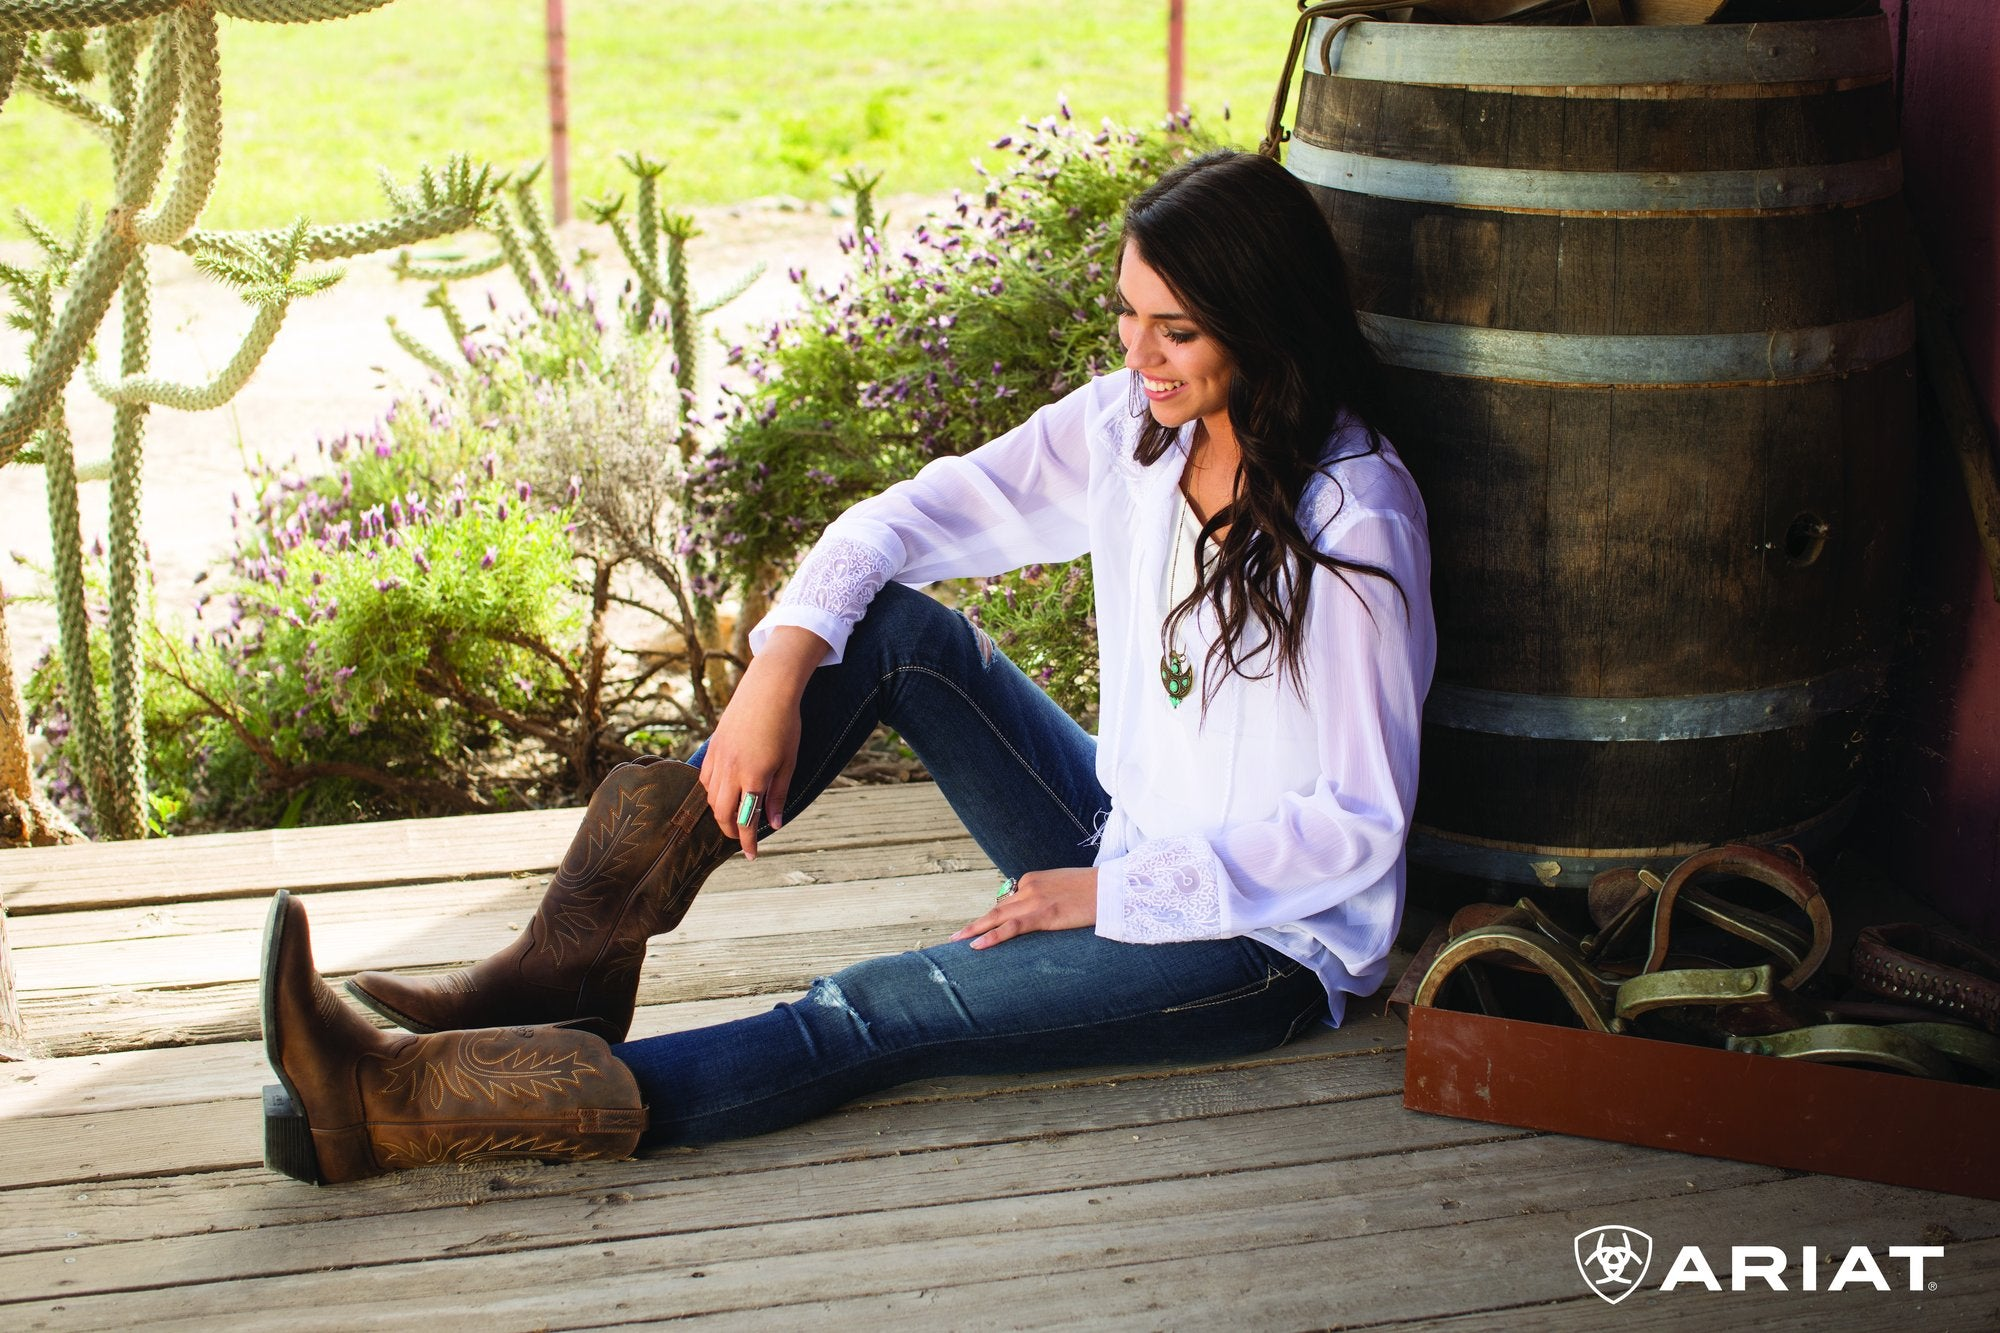 Shop Ariat